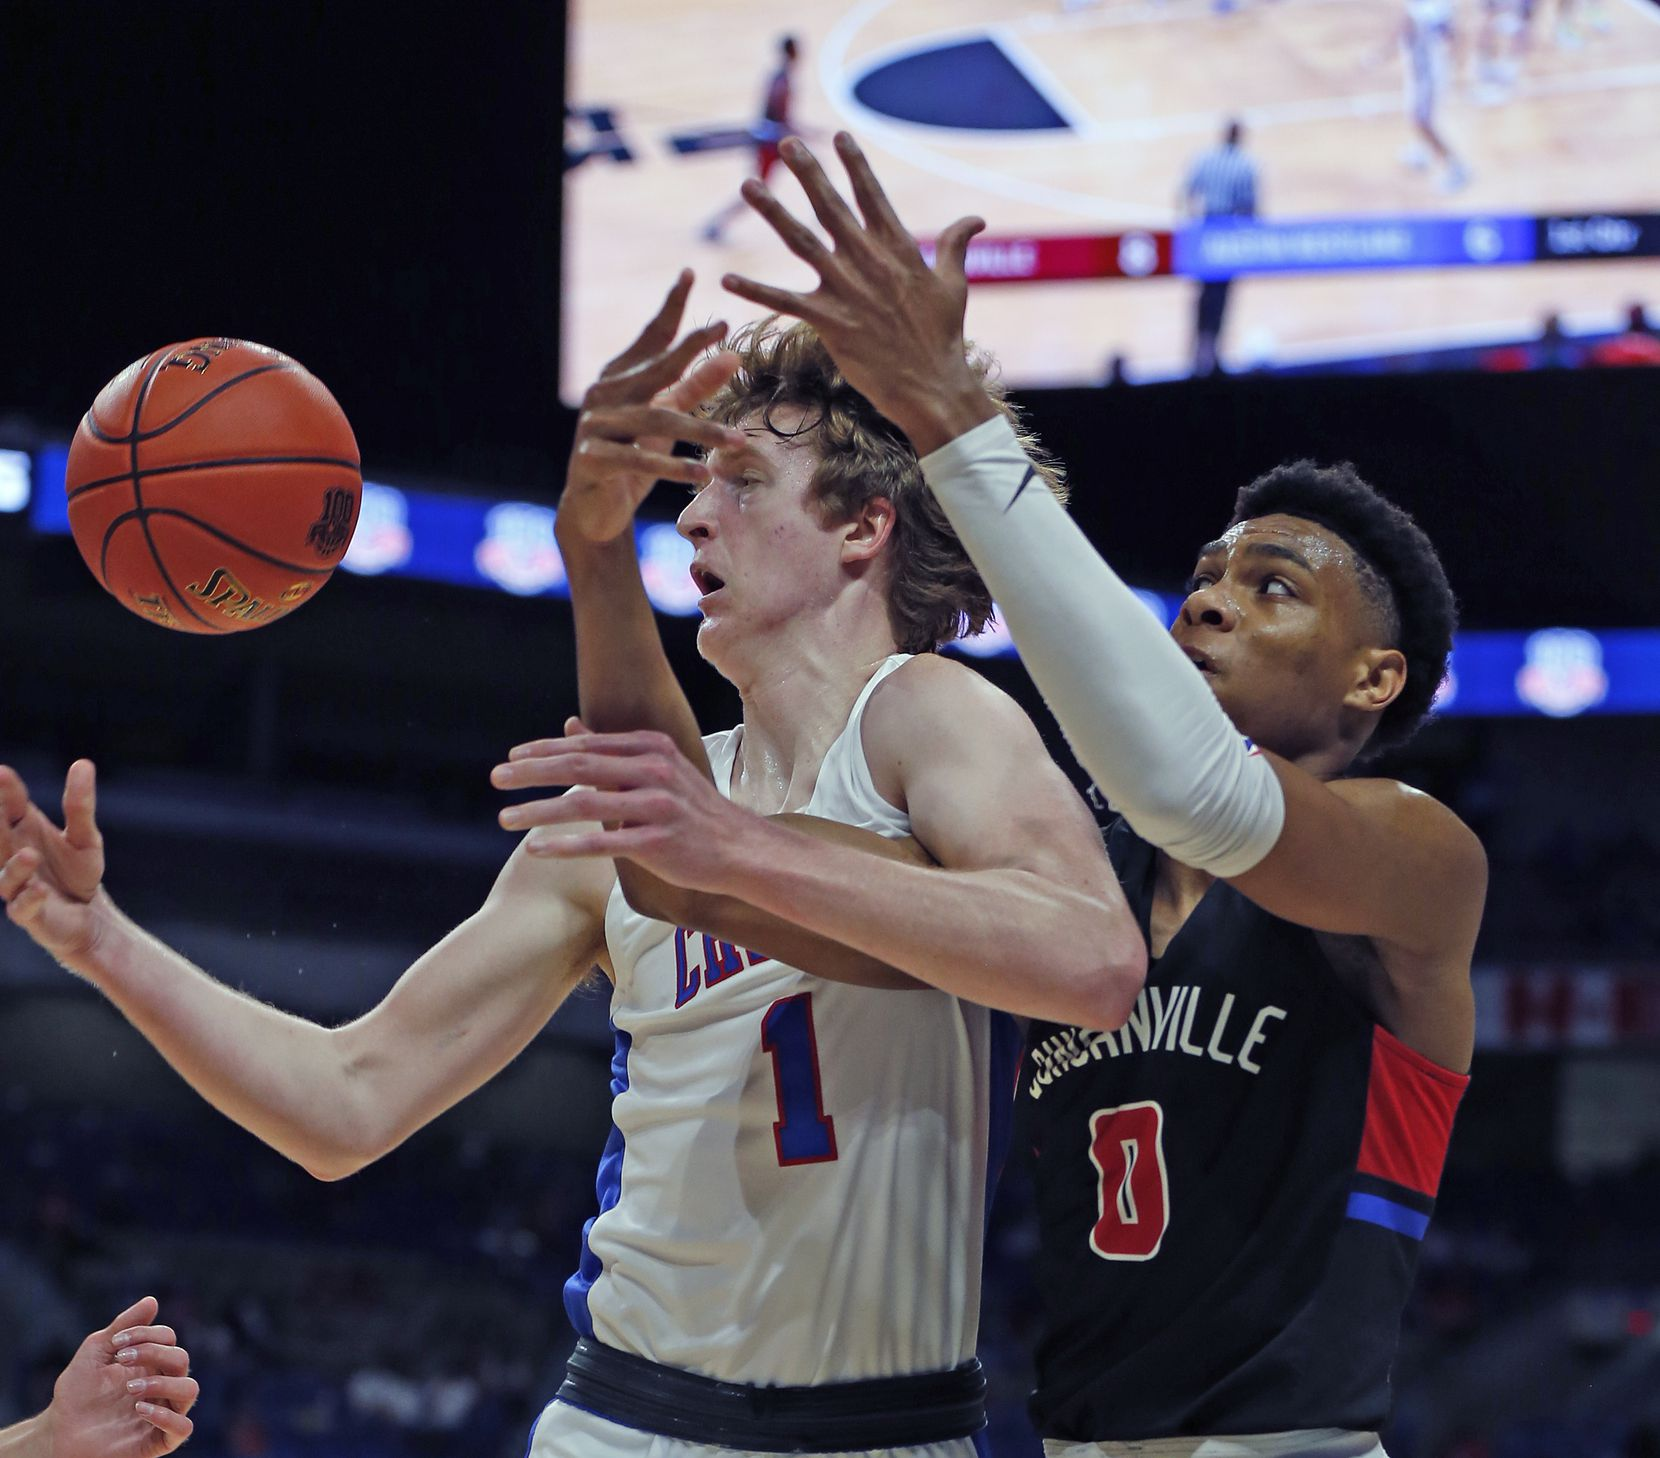 Duncanville Zhuric Phelps #0 battles Westlake Cade Mankle #1 for a rebound. UIL boys Class 6A basketball state championship game between Duncanville and Austin Westlake on Saturday, March 13, 2021 at the Alamodome.